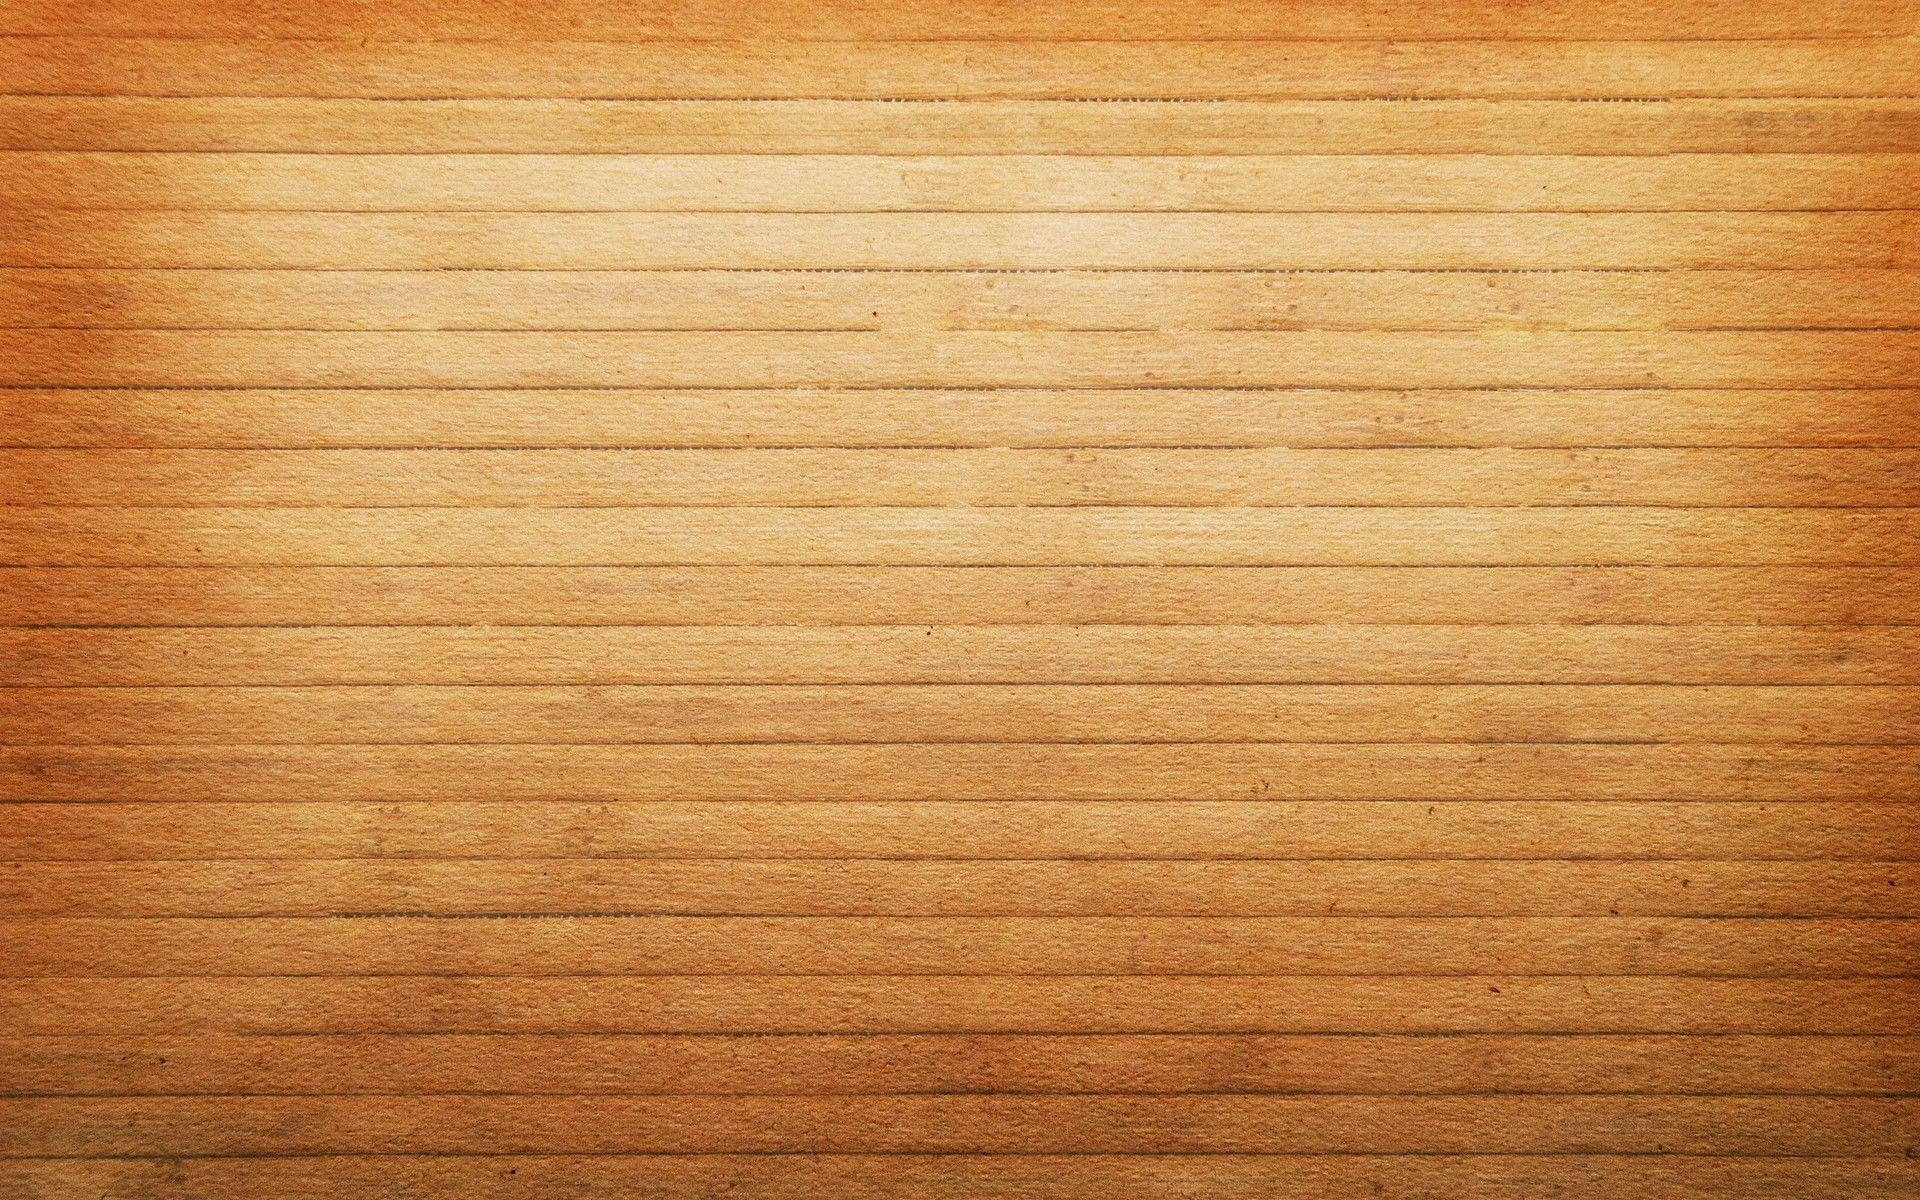 wood hd wallpapers - wallpaper cave